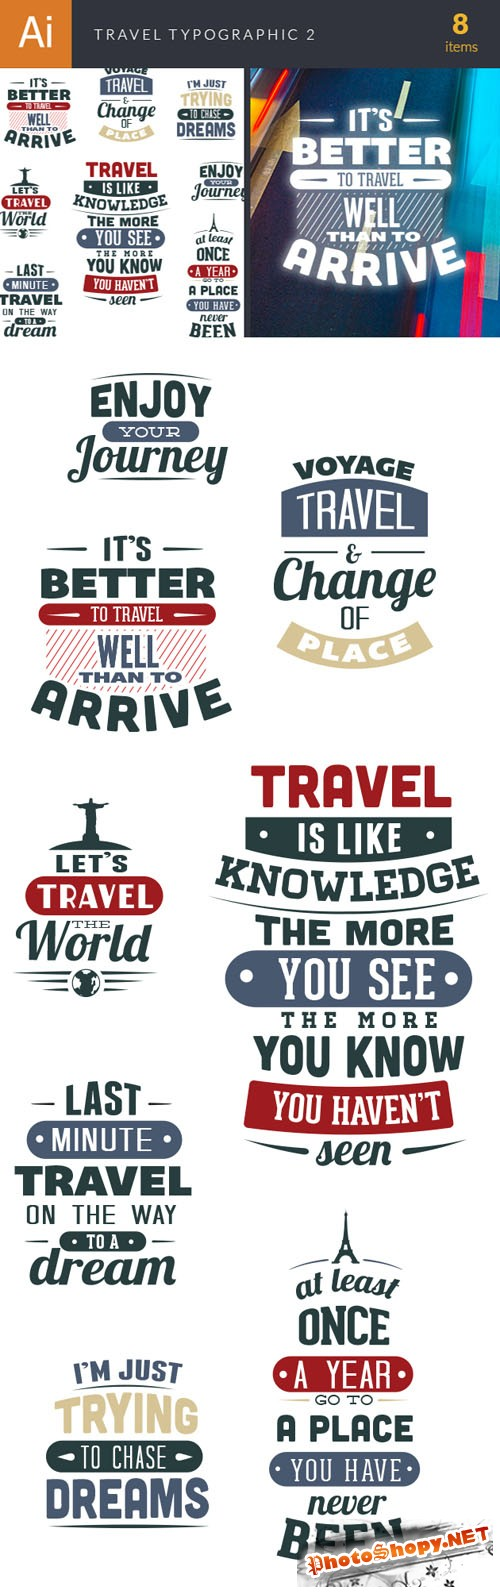 Travel Typographic Vector Elements Set 2